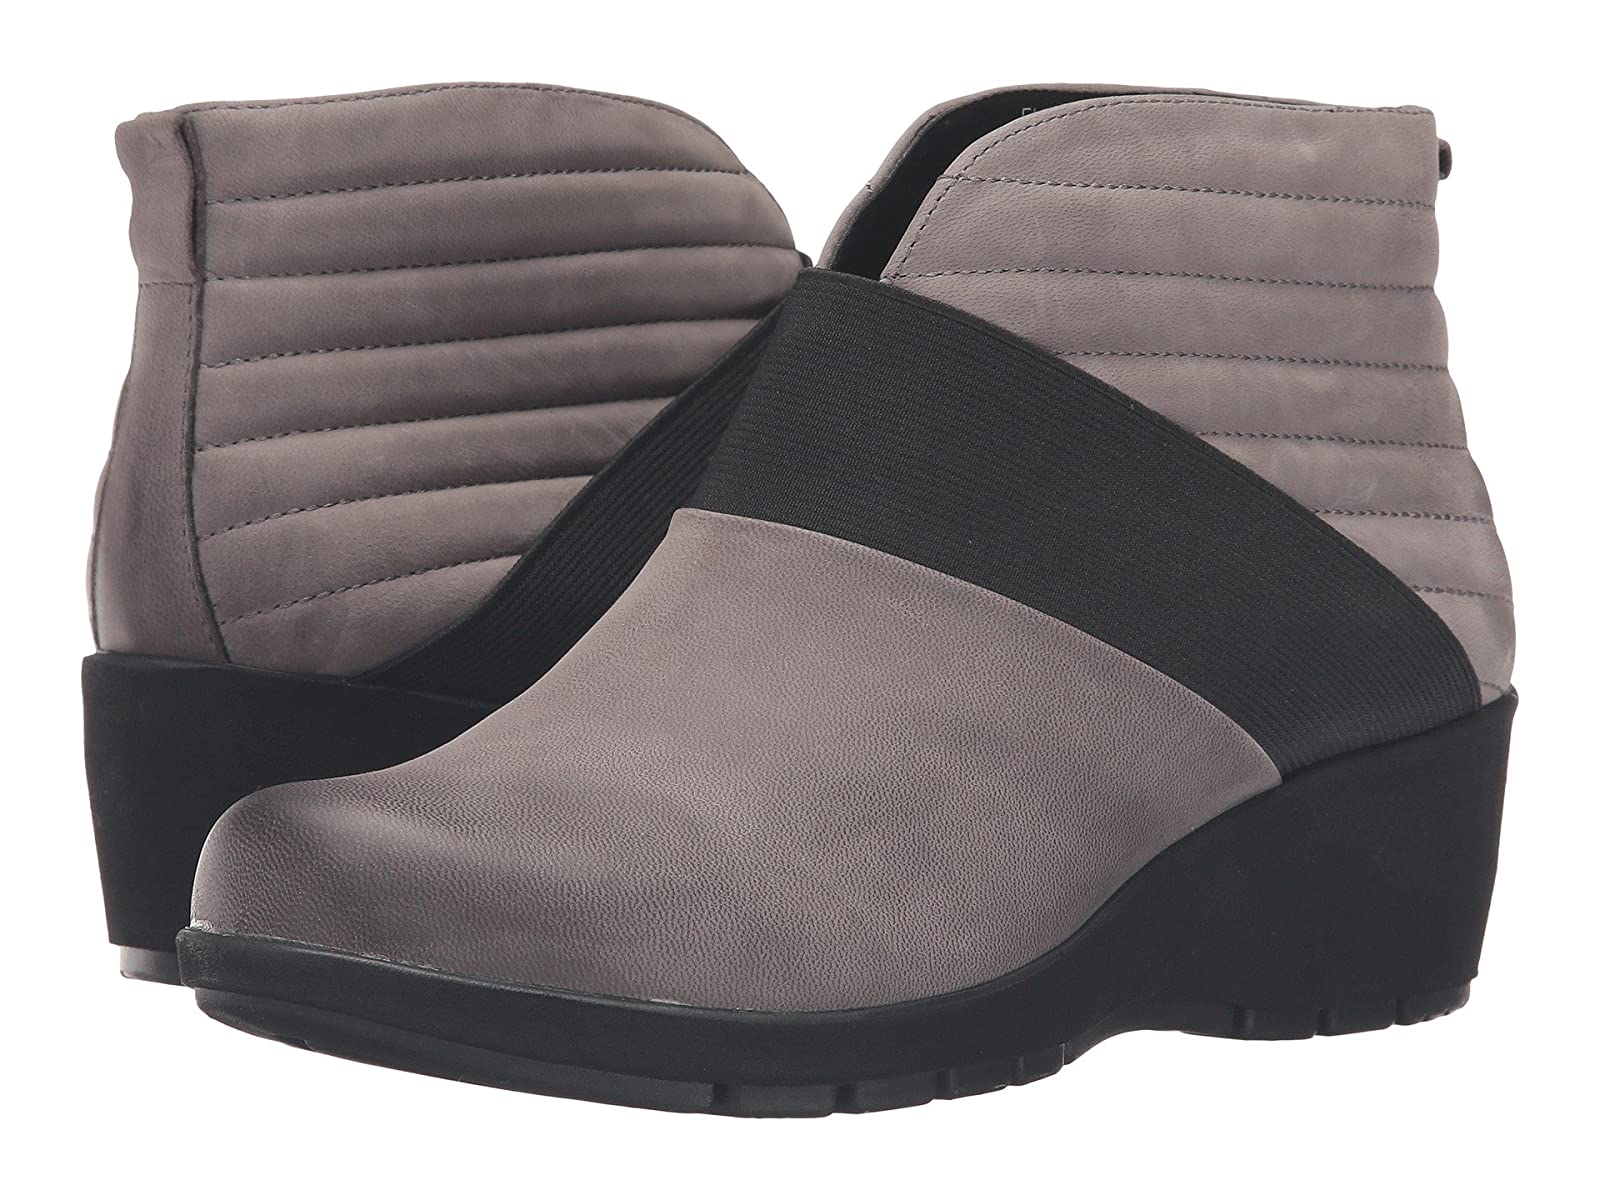 Aetrex Essence AdeleCheap and distinctive eye-catching shoes